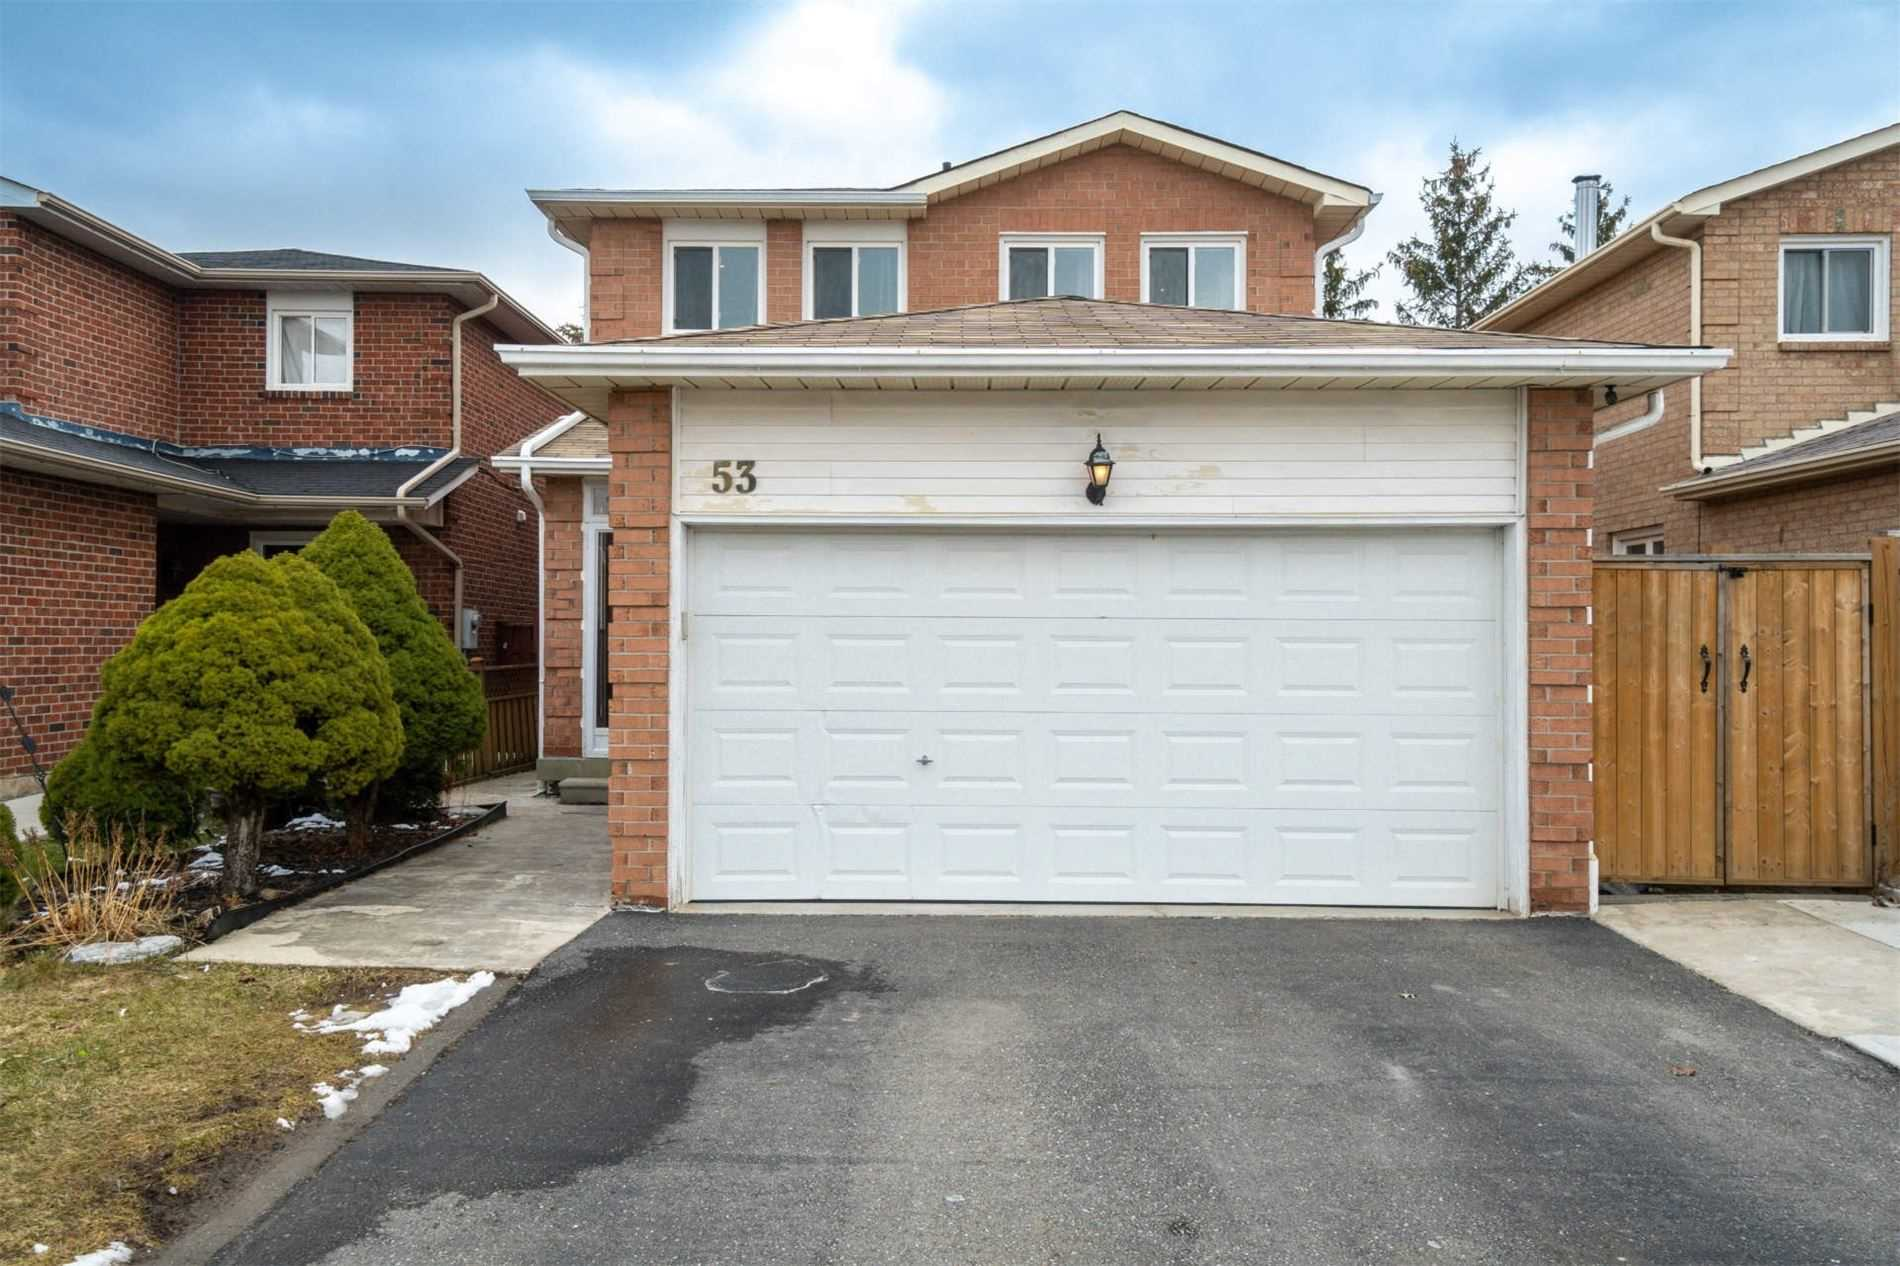 For Sale: 53 Metzak Drive, Brampton, ON   3 Bed, 4 Bath House for $799900.00. See 20 photos!